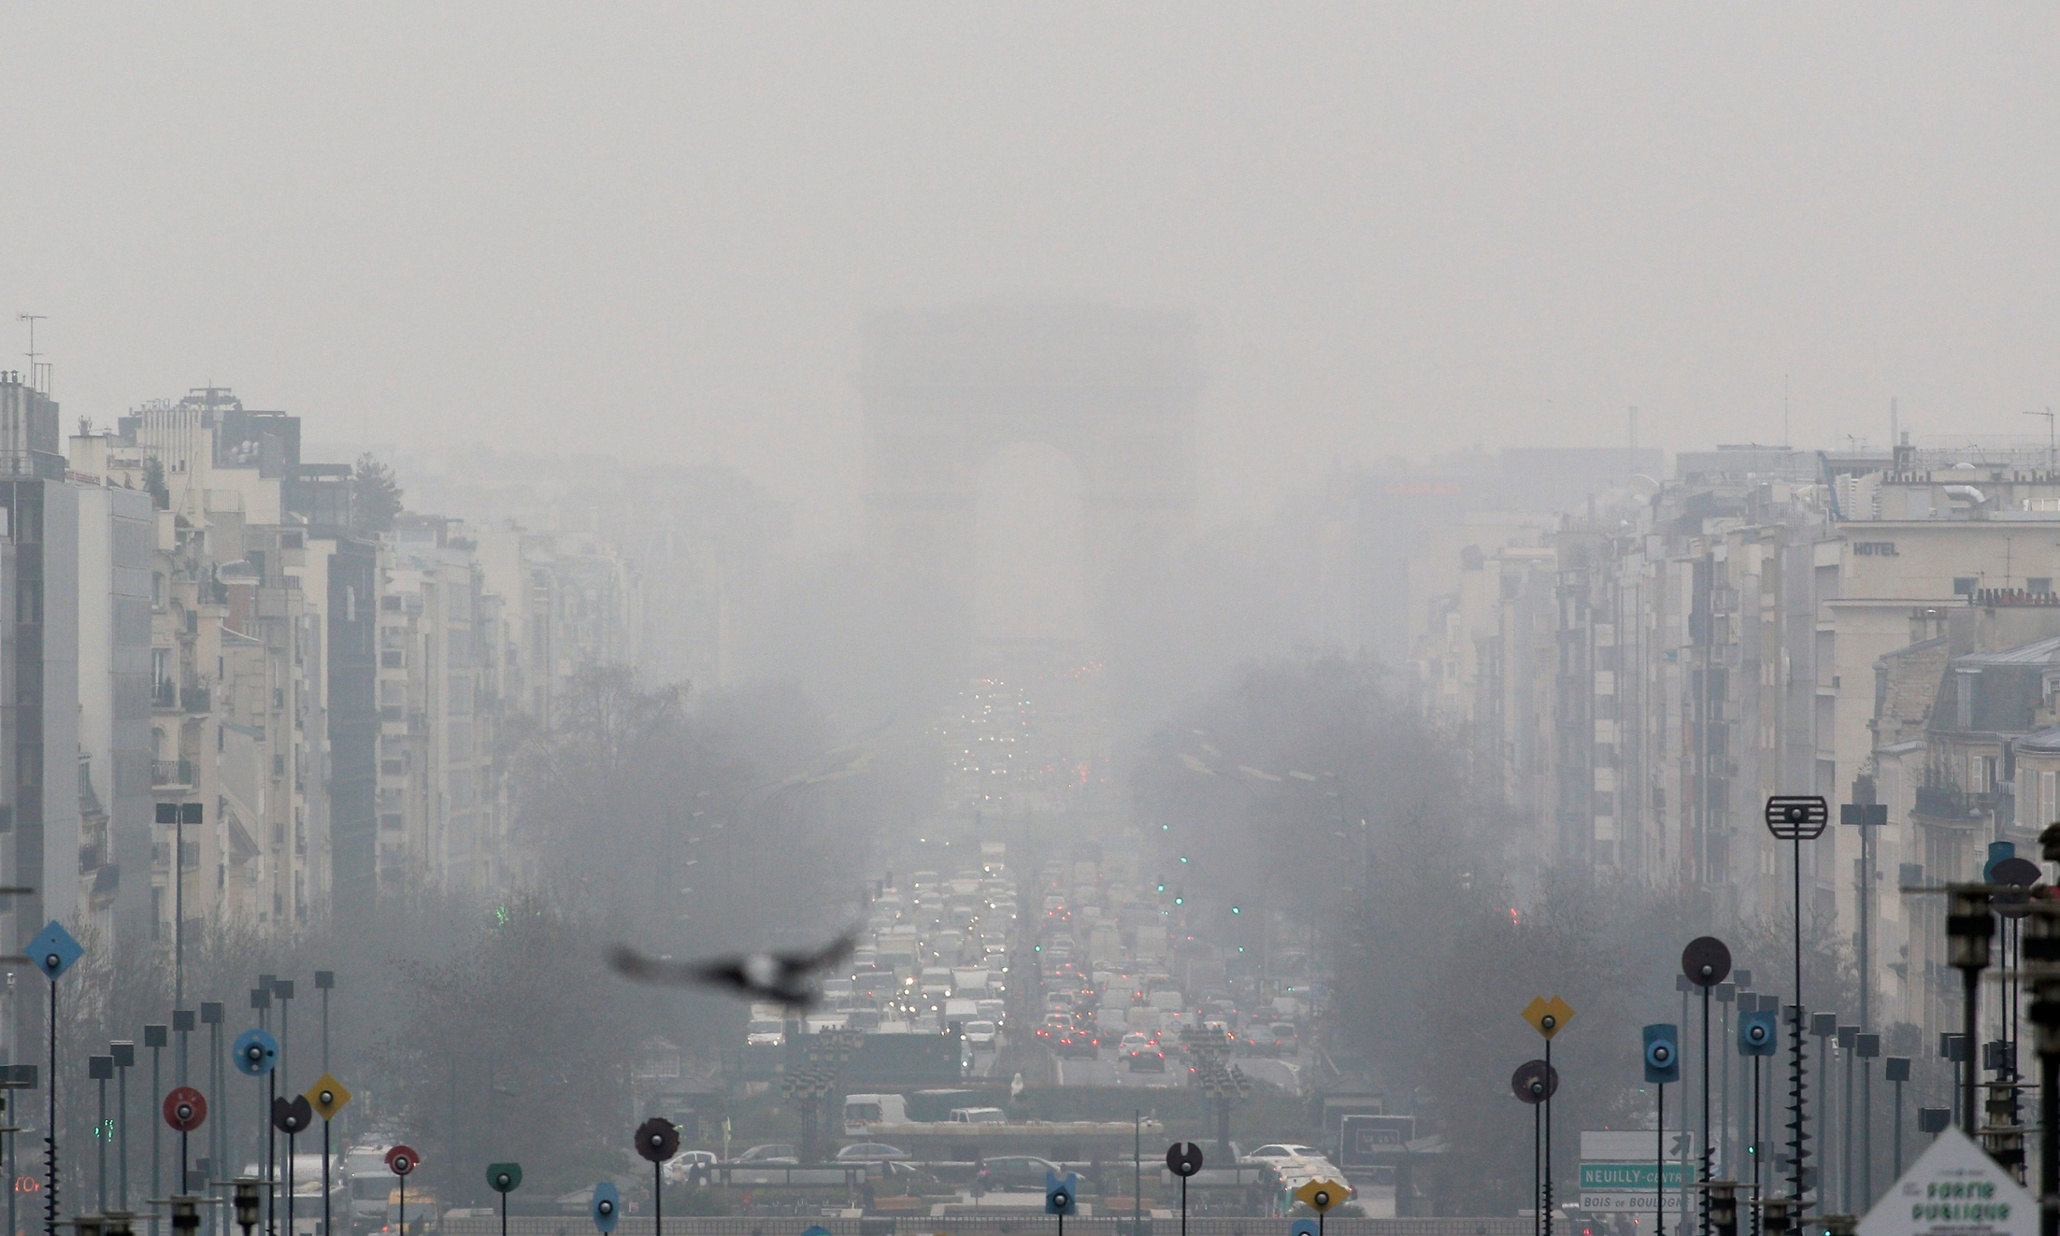 Epa Stands For >> Air pollution costs Europe $1.6tn a year in early deaths ...